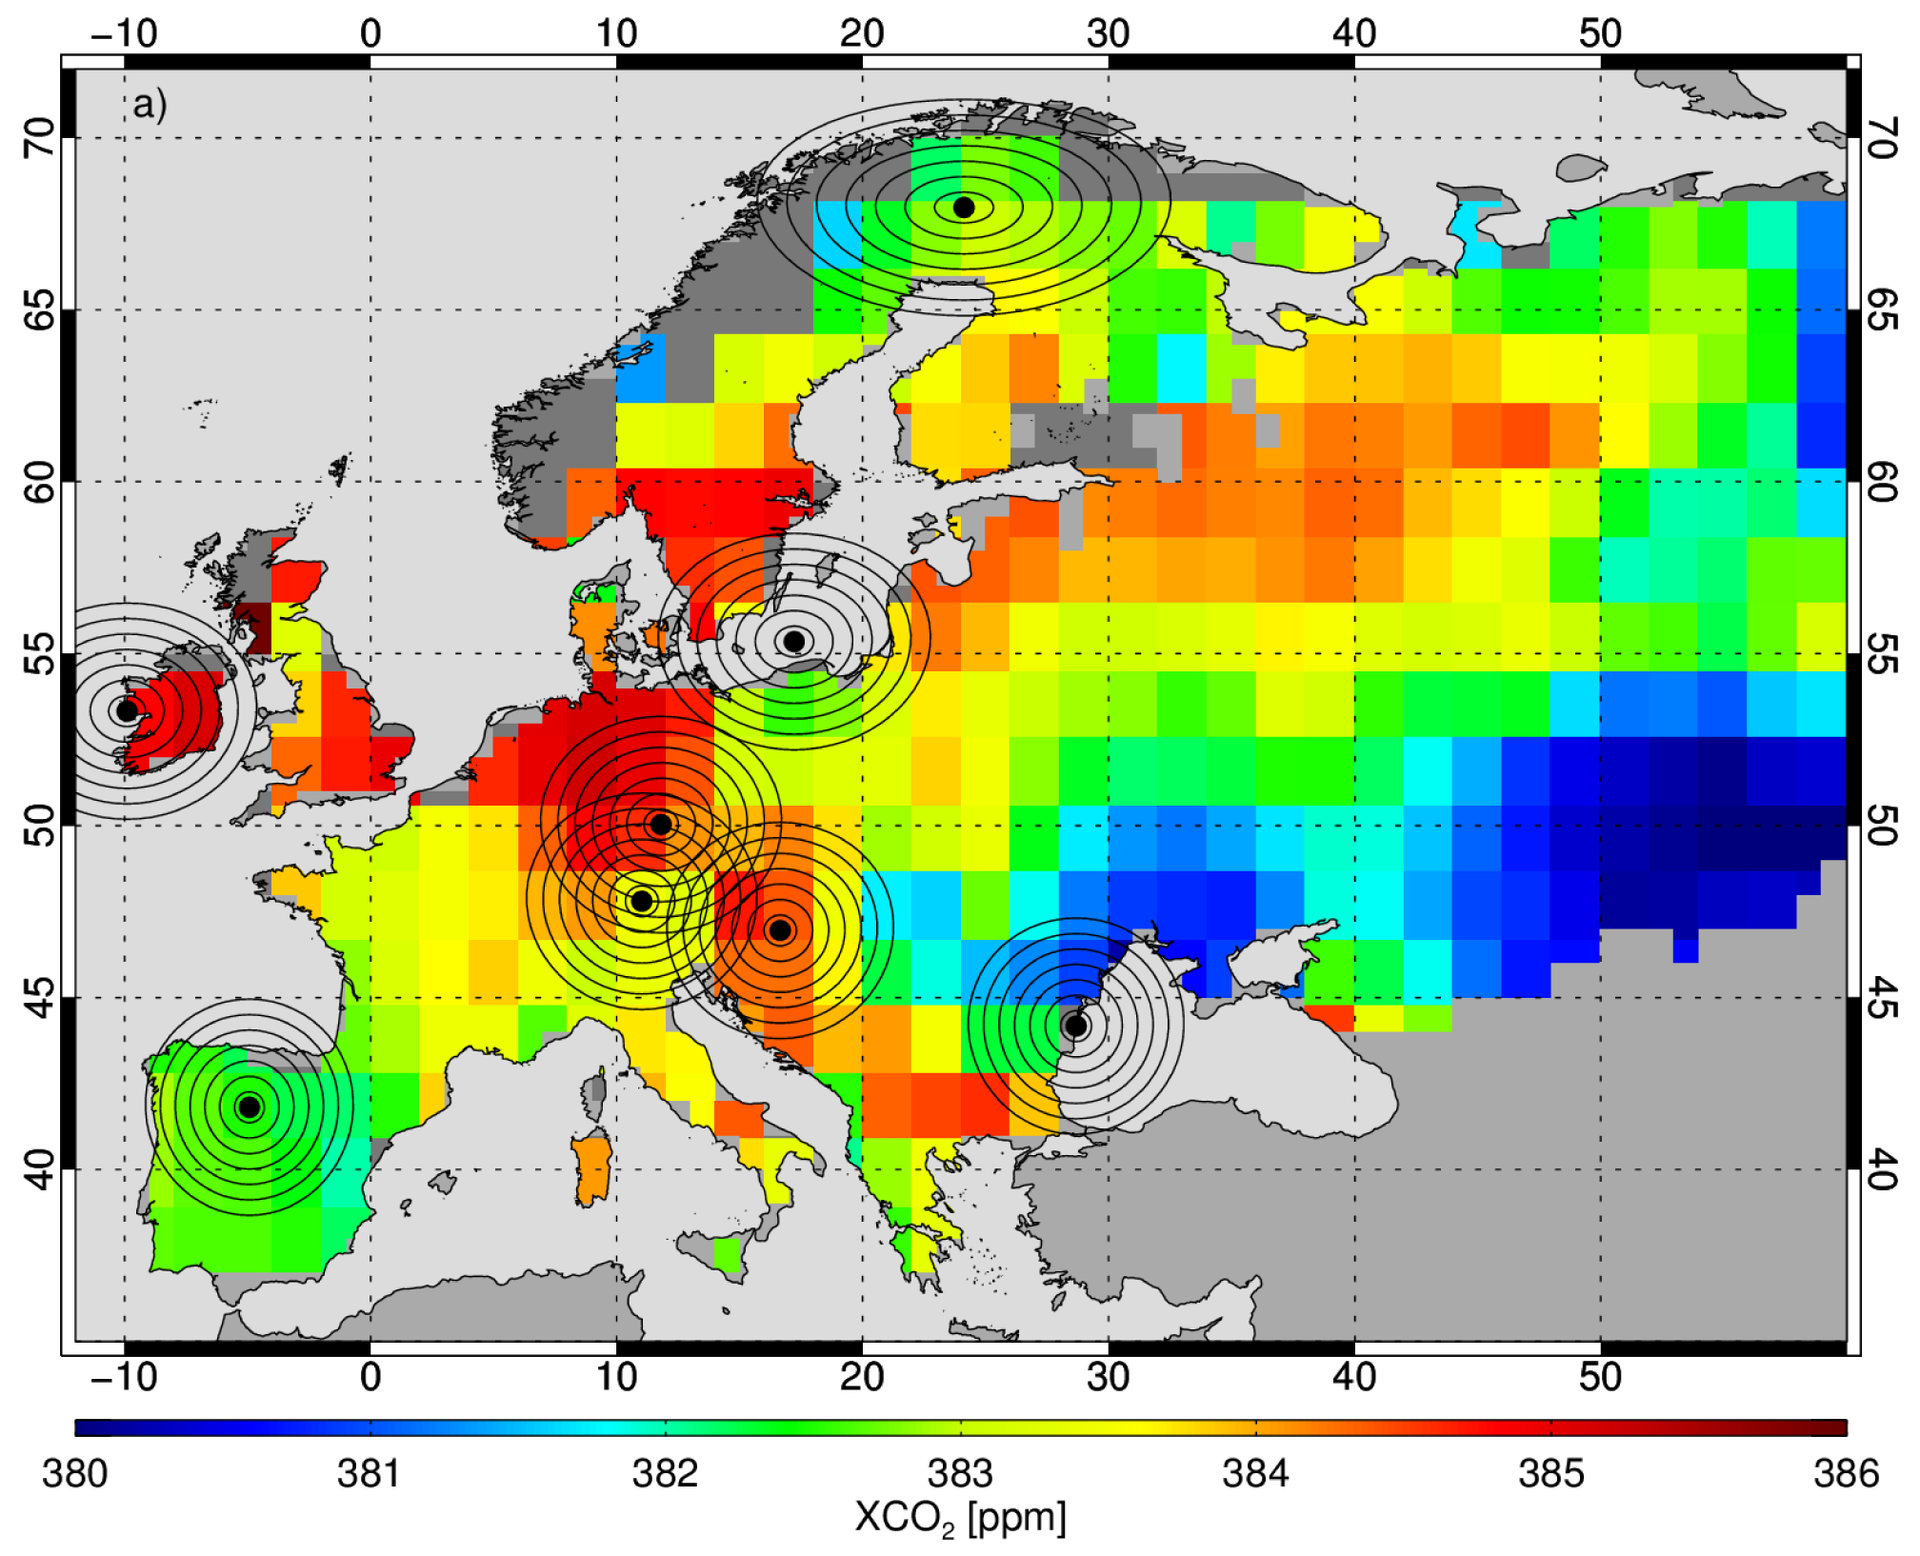 Average satellite carbon dioxide concentrations over Europe